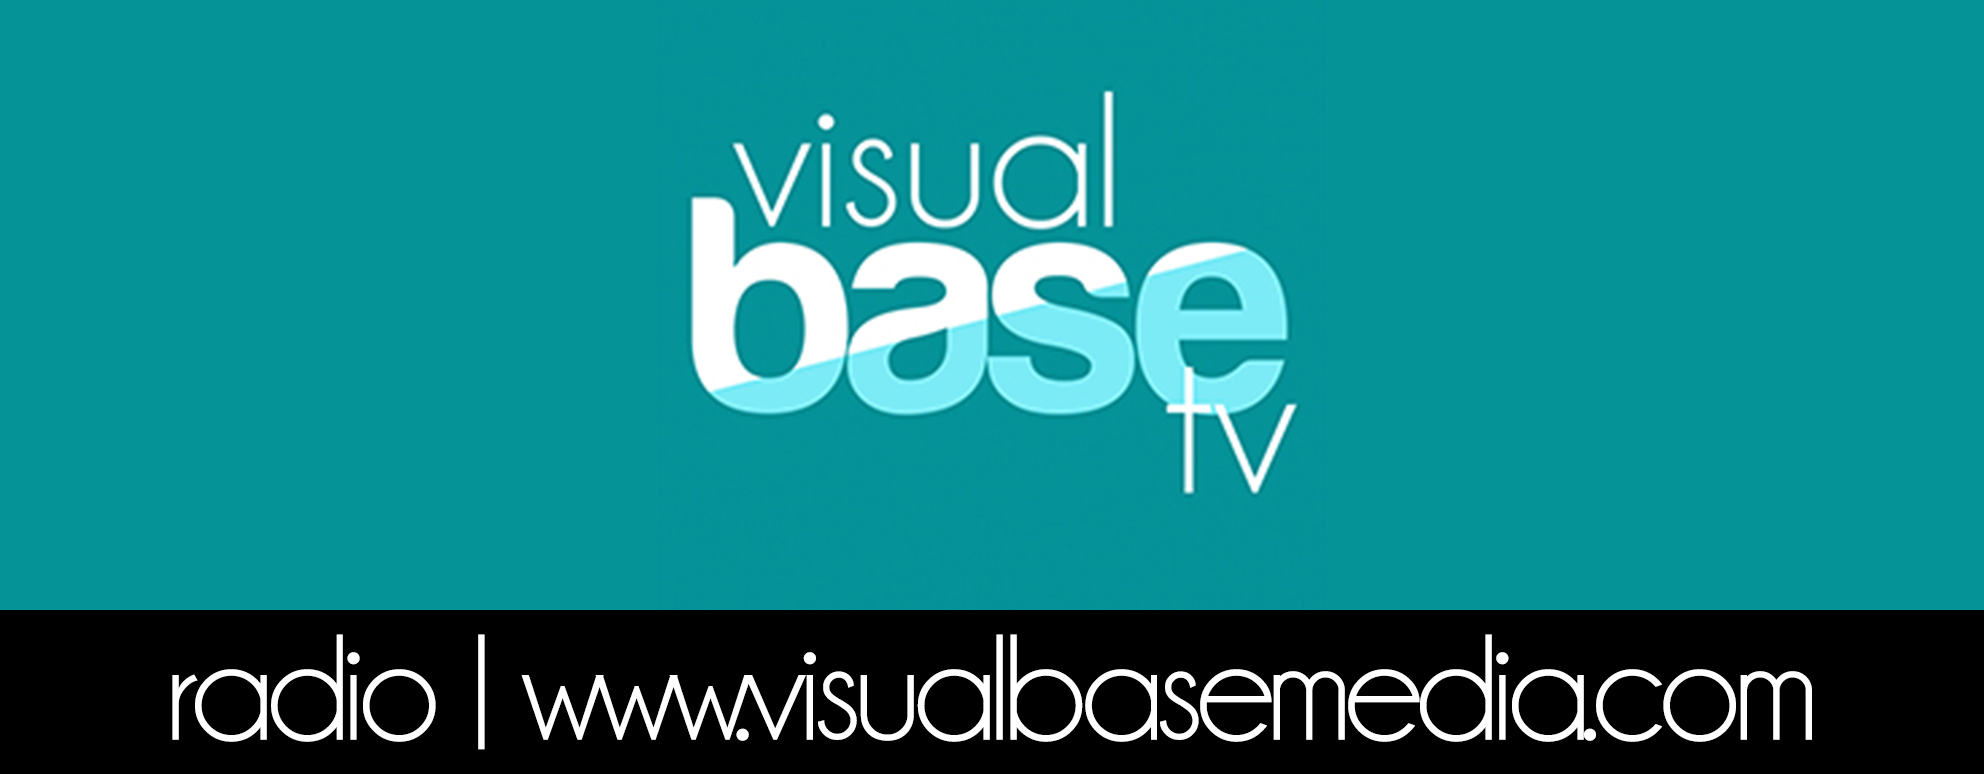 Visual Base TV Radio #VBTVRadio Schedule Due To Stream